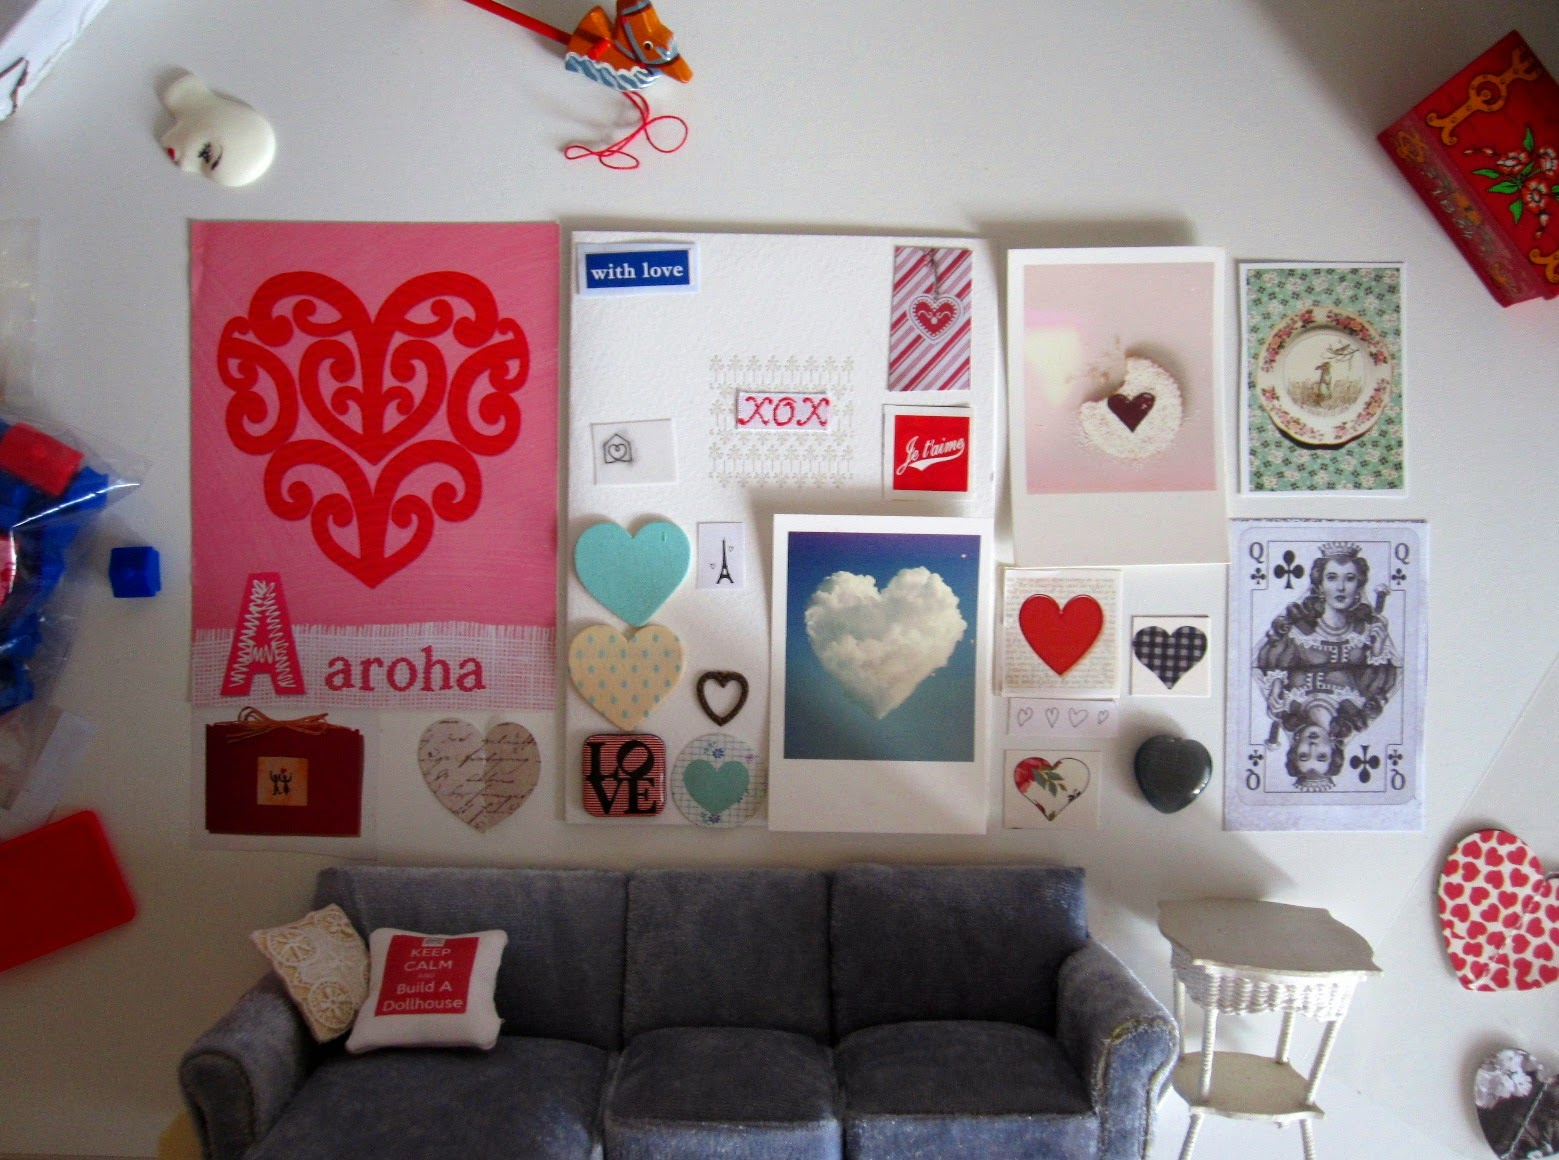 Modern dolls' house miniature grey sectional sofa and cane table with a selection of heart-themed images arranged 'above' them on a wall (actually a desk, with the dolls' house furniture tuned sideways).